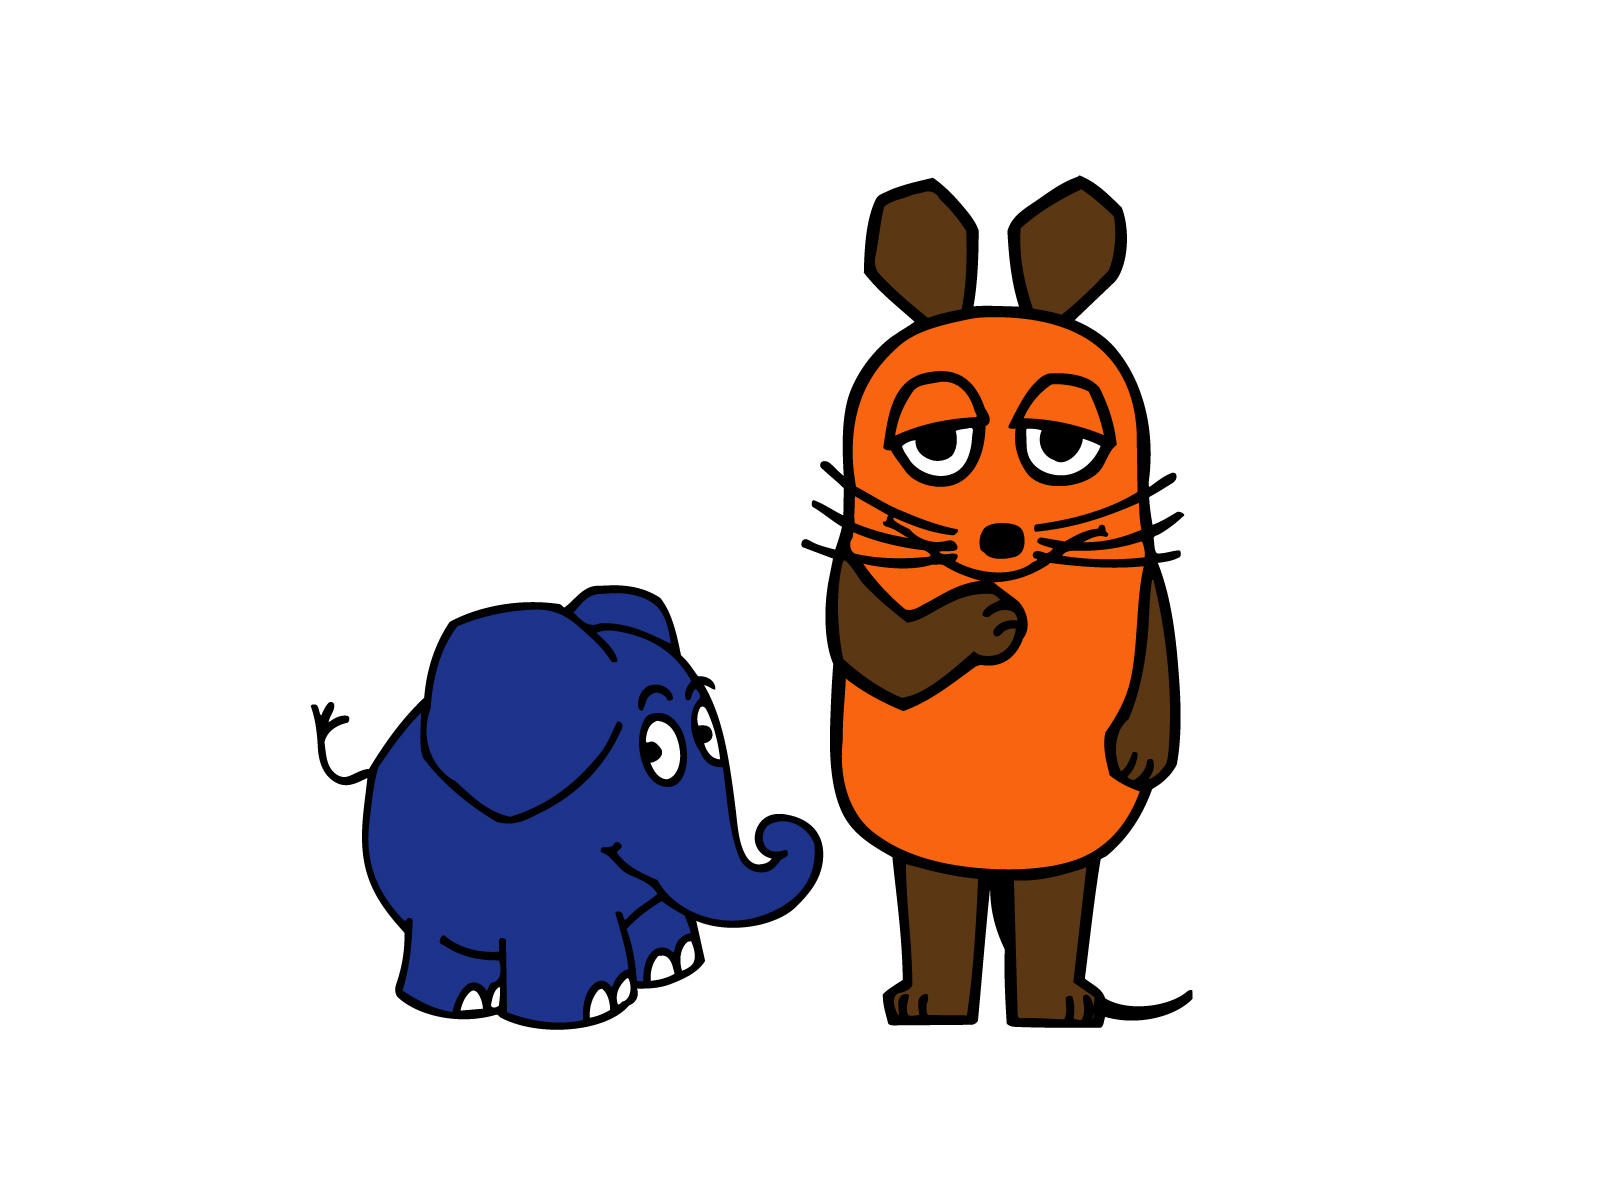 Maus und Elefant w by rooot